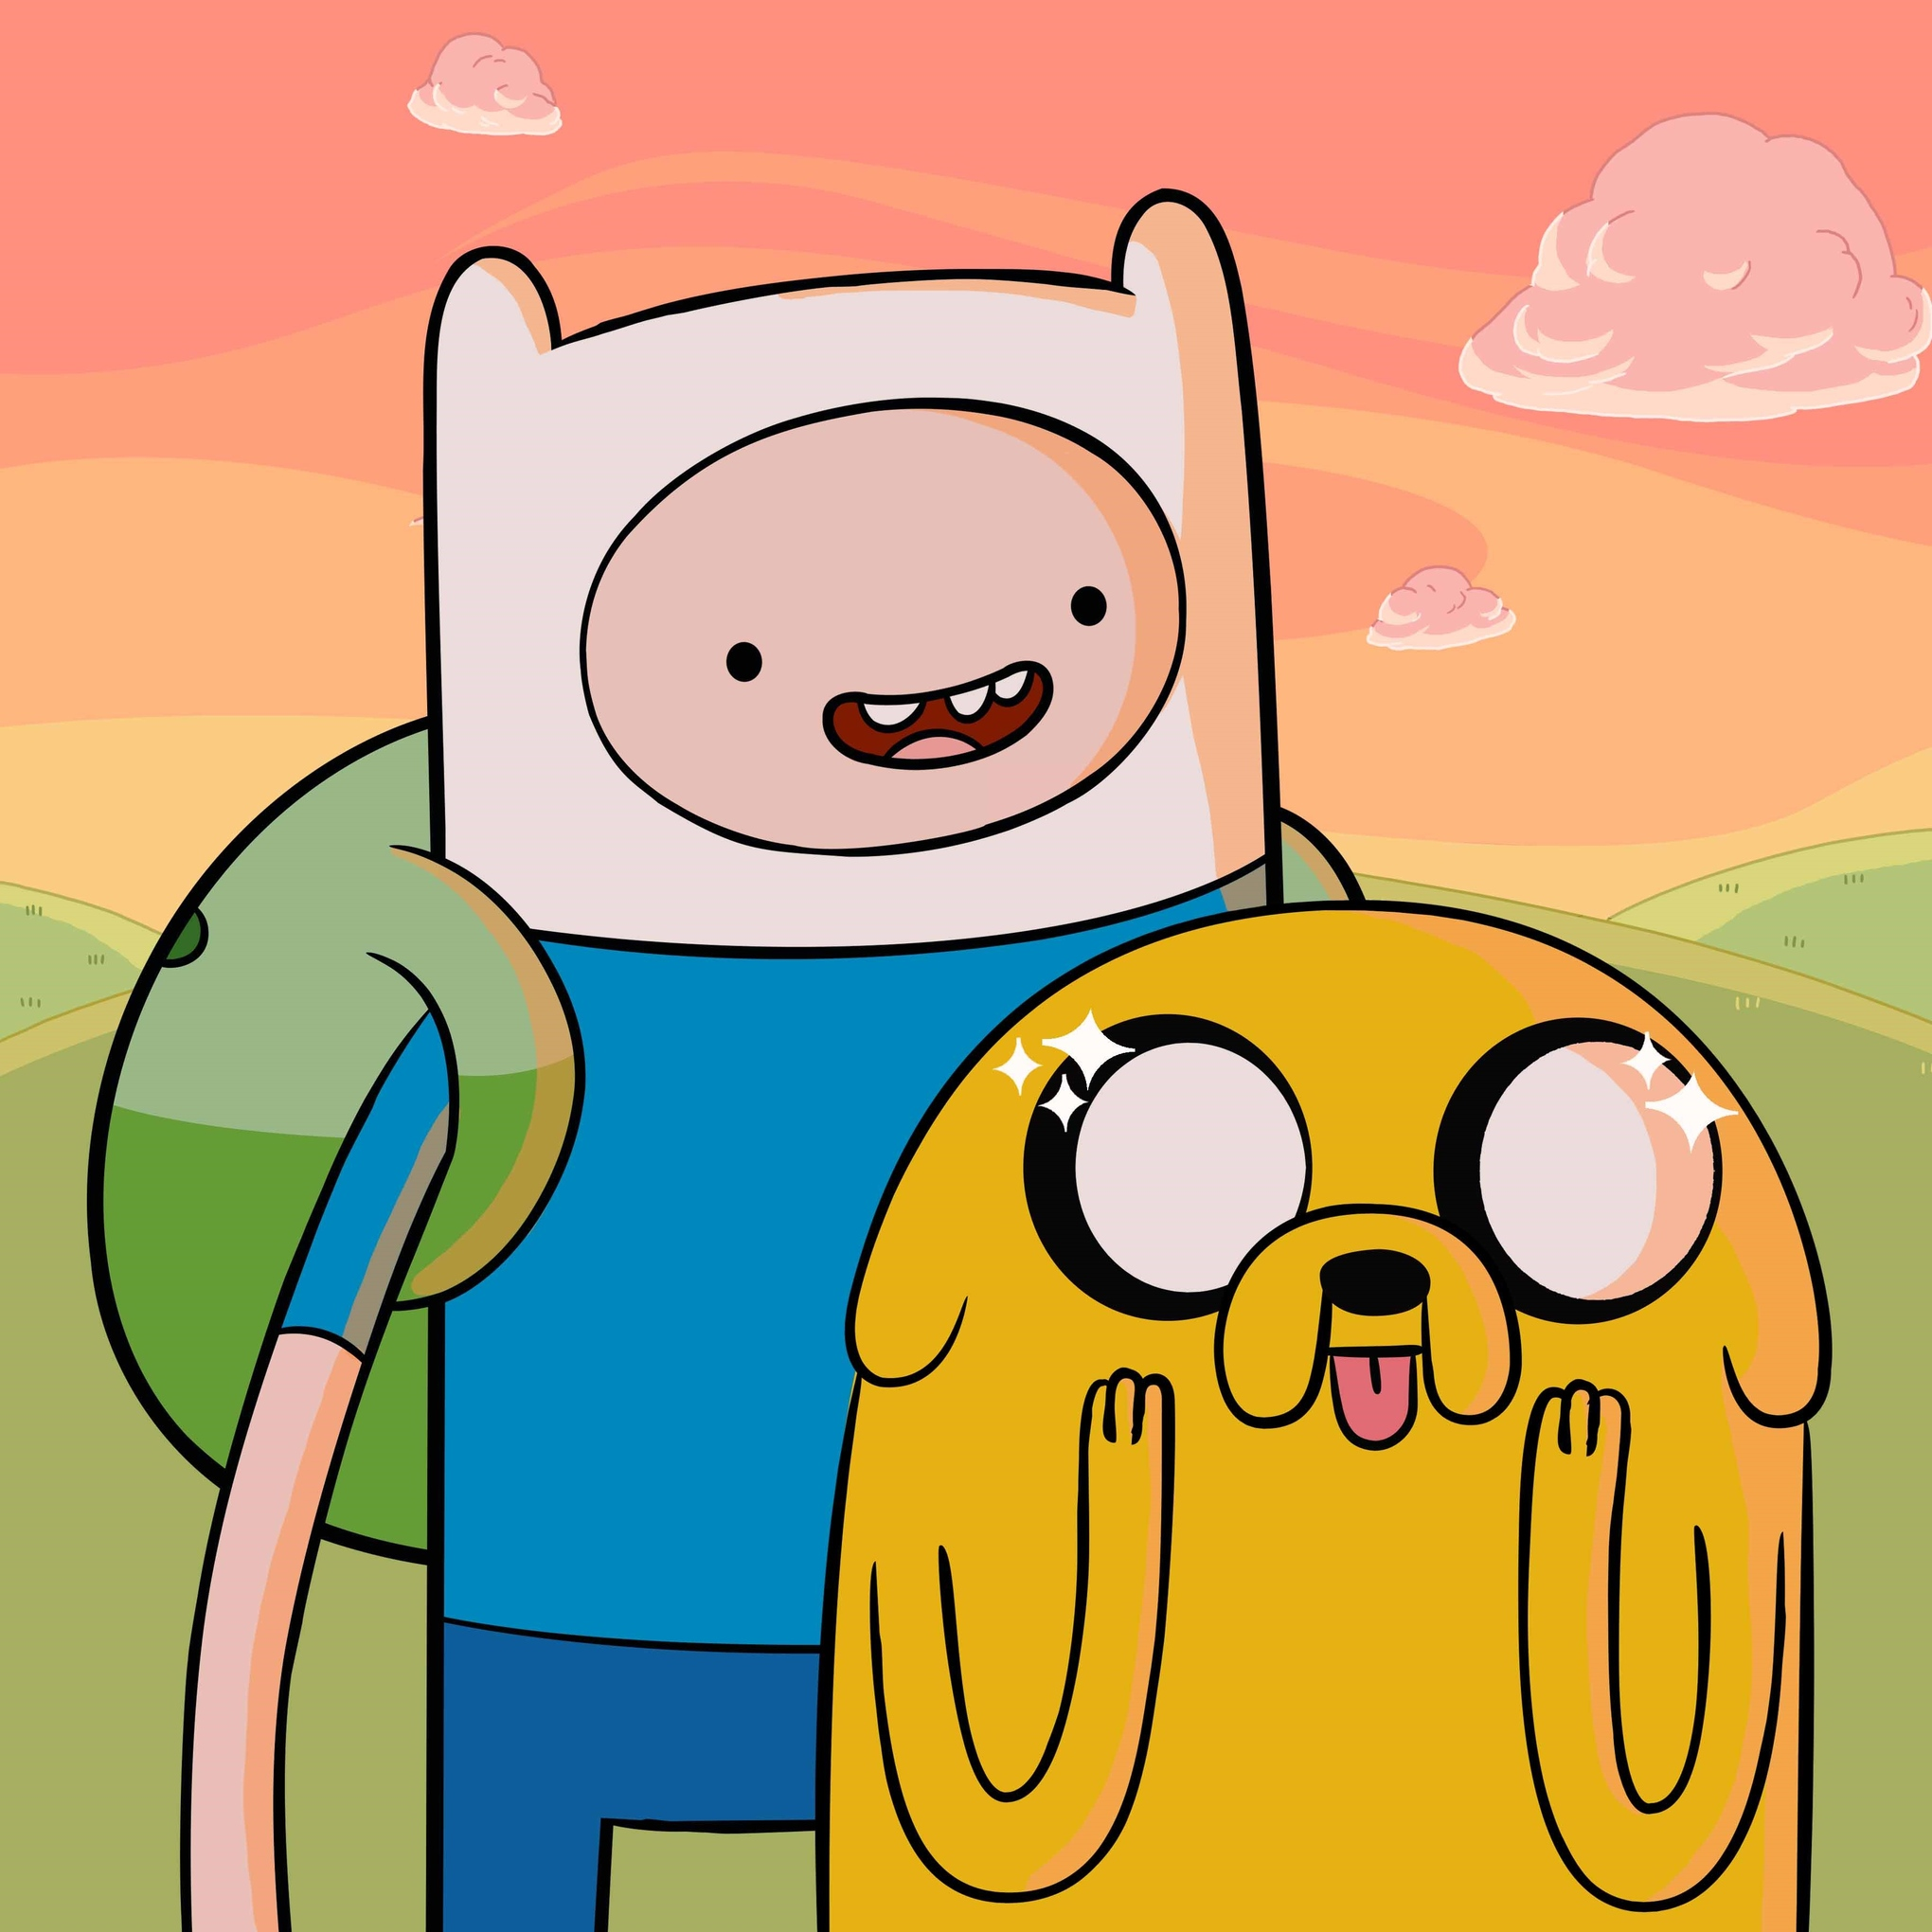 Adventure Time: The Secret of the Nameless Kingdom launches this November